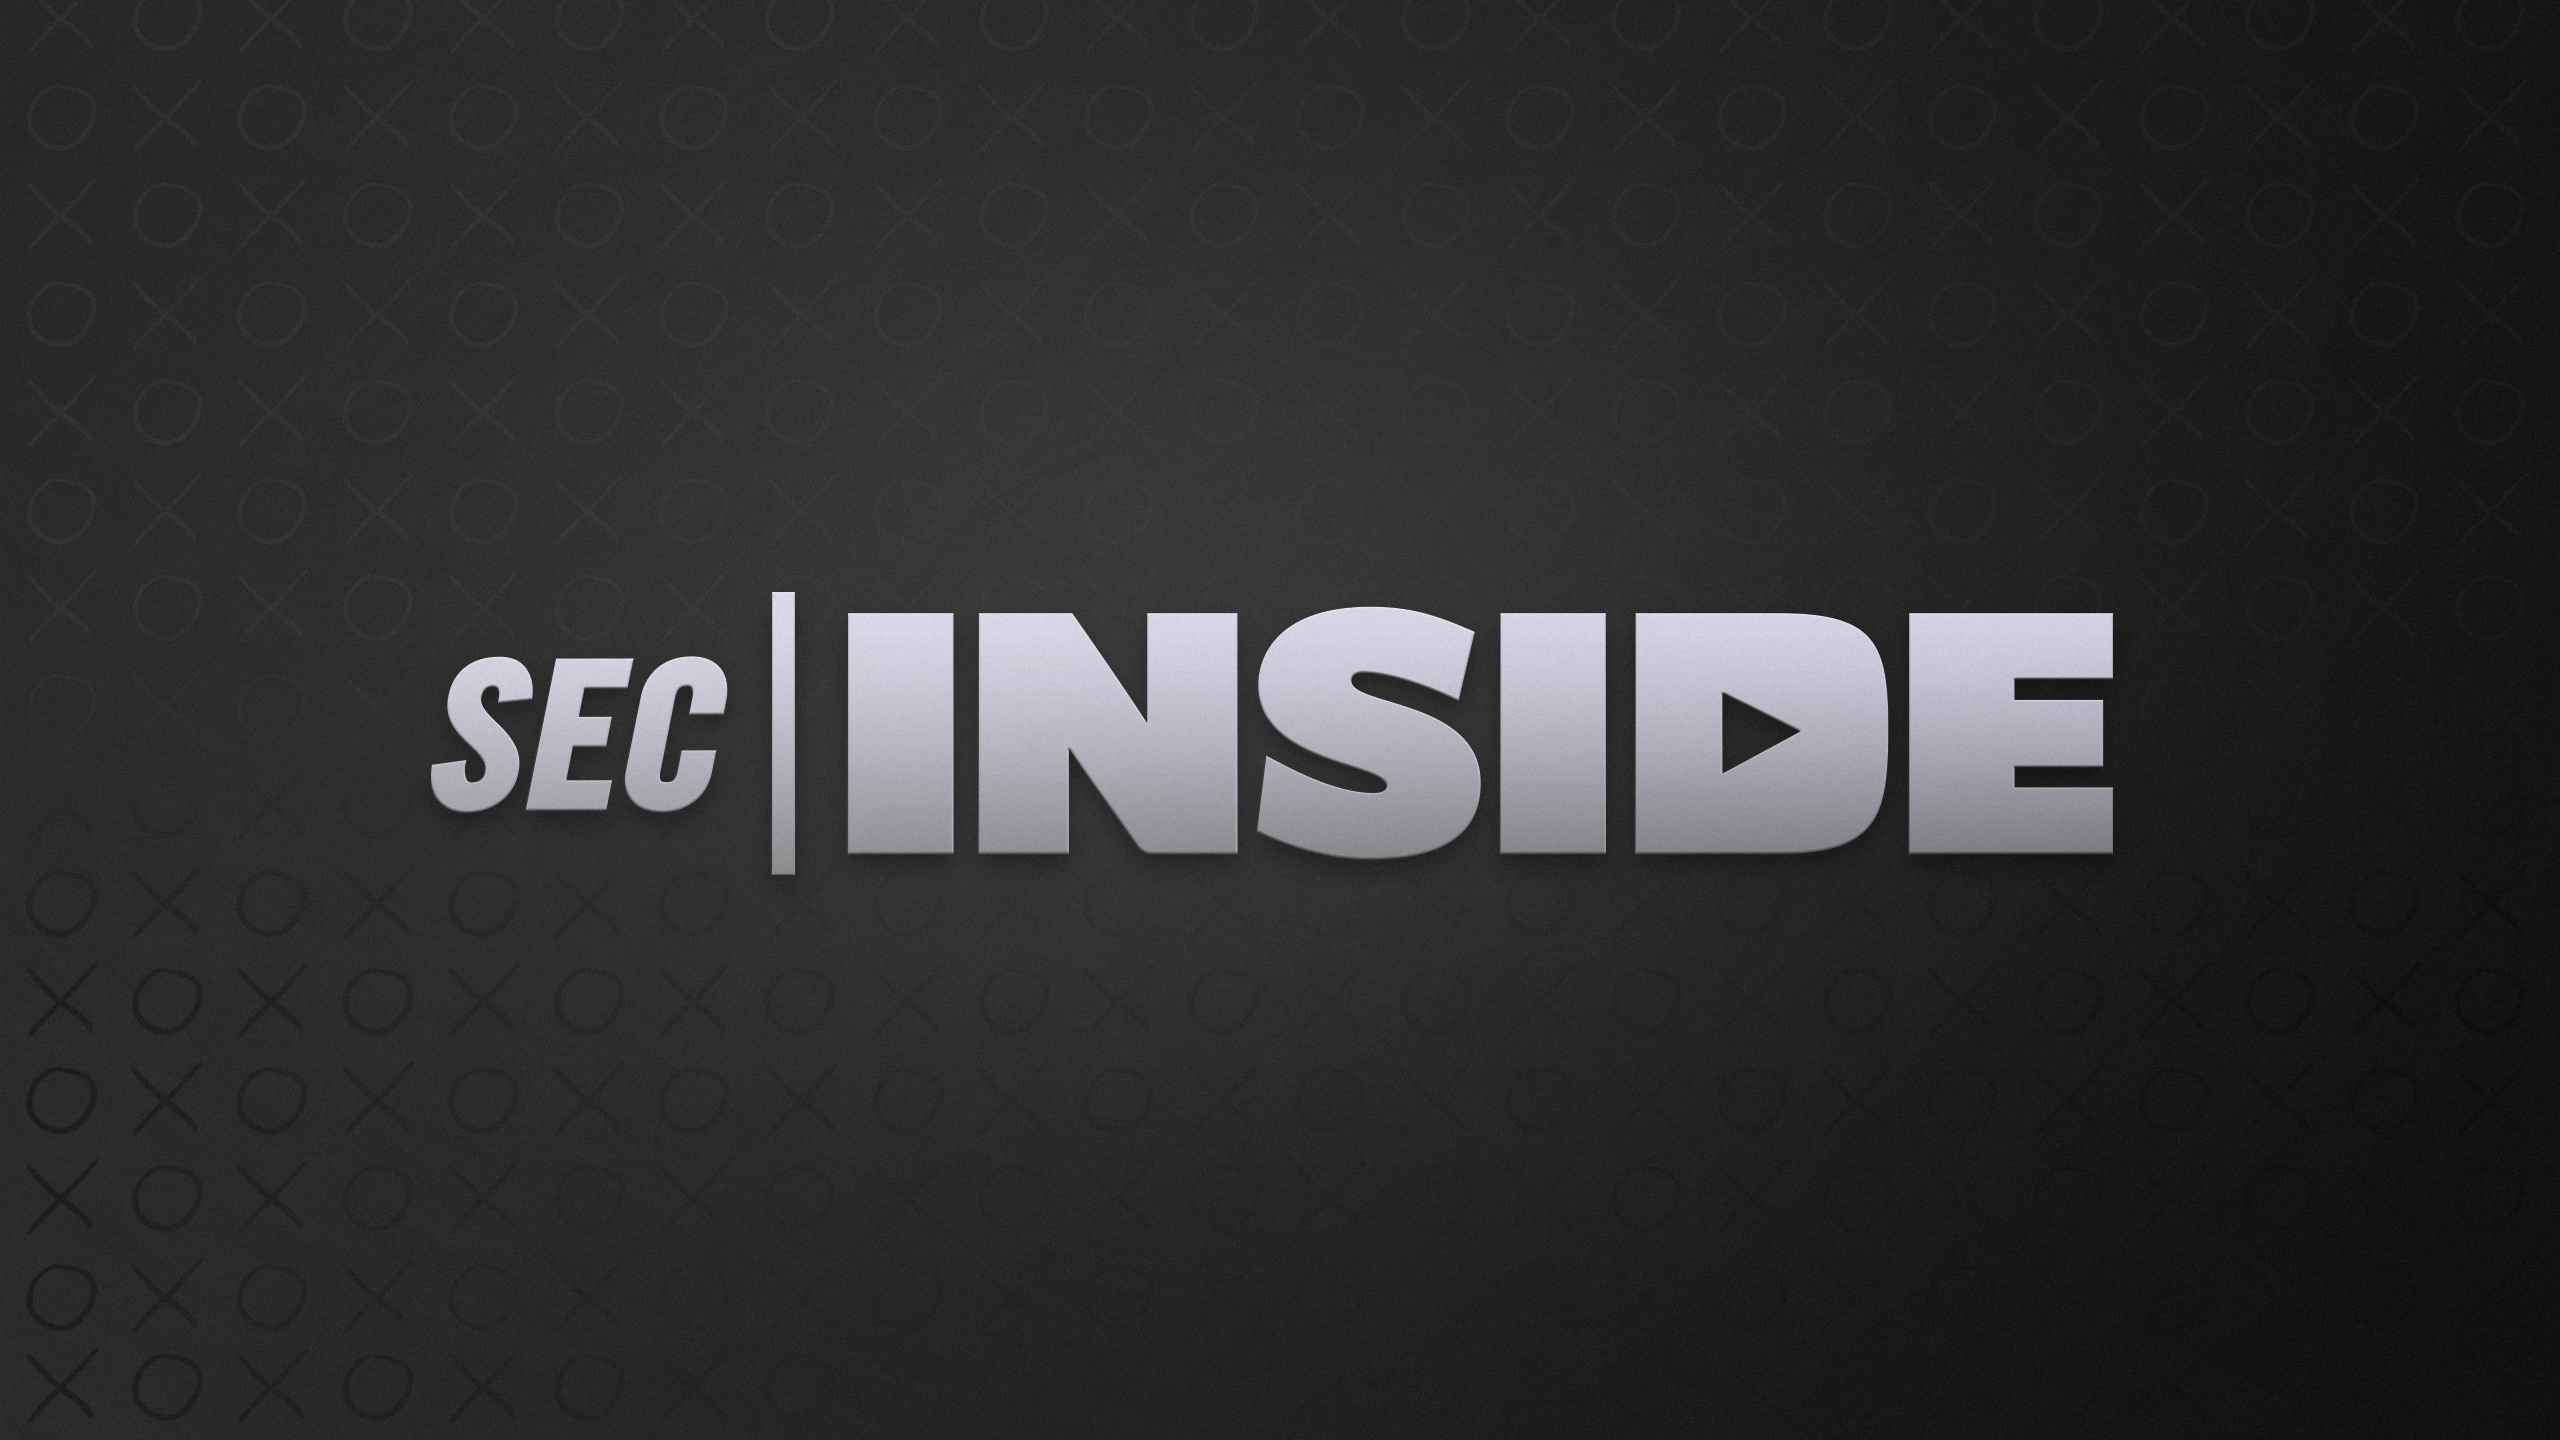 SEC Inside: Ole Miss vs. Vanderbilt Presented by Bass Pro Shops